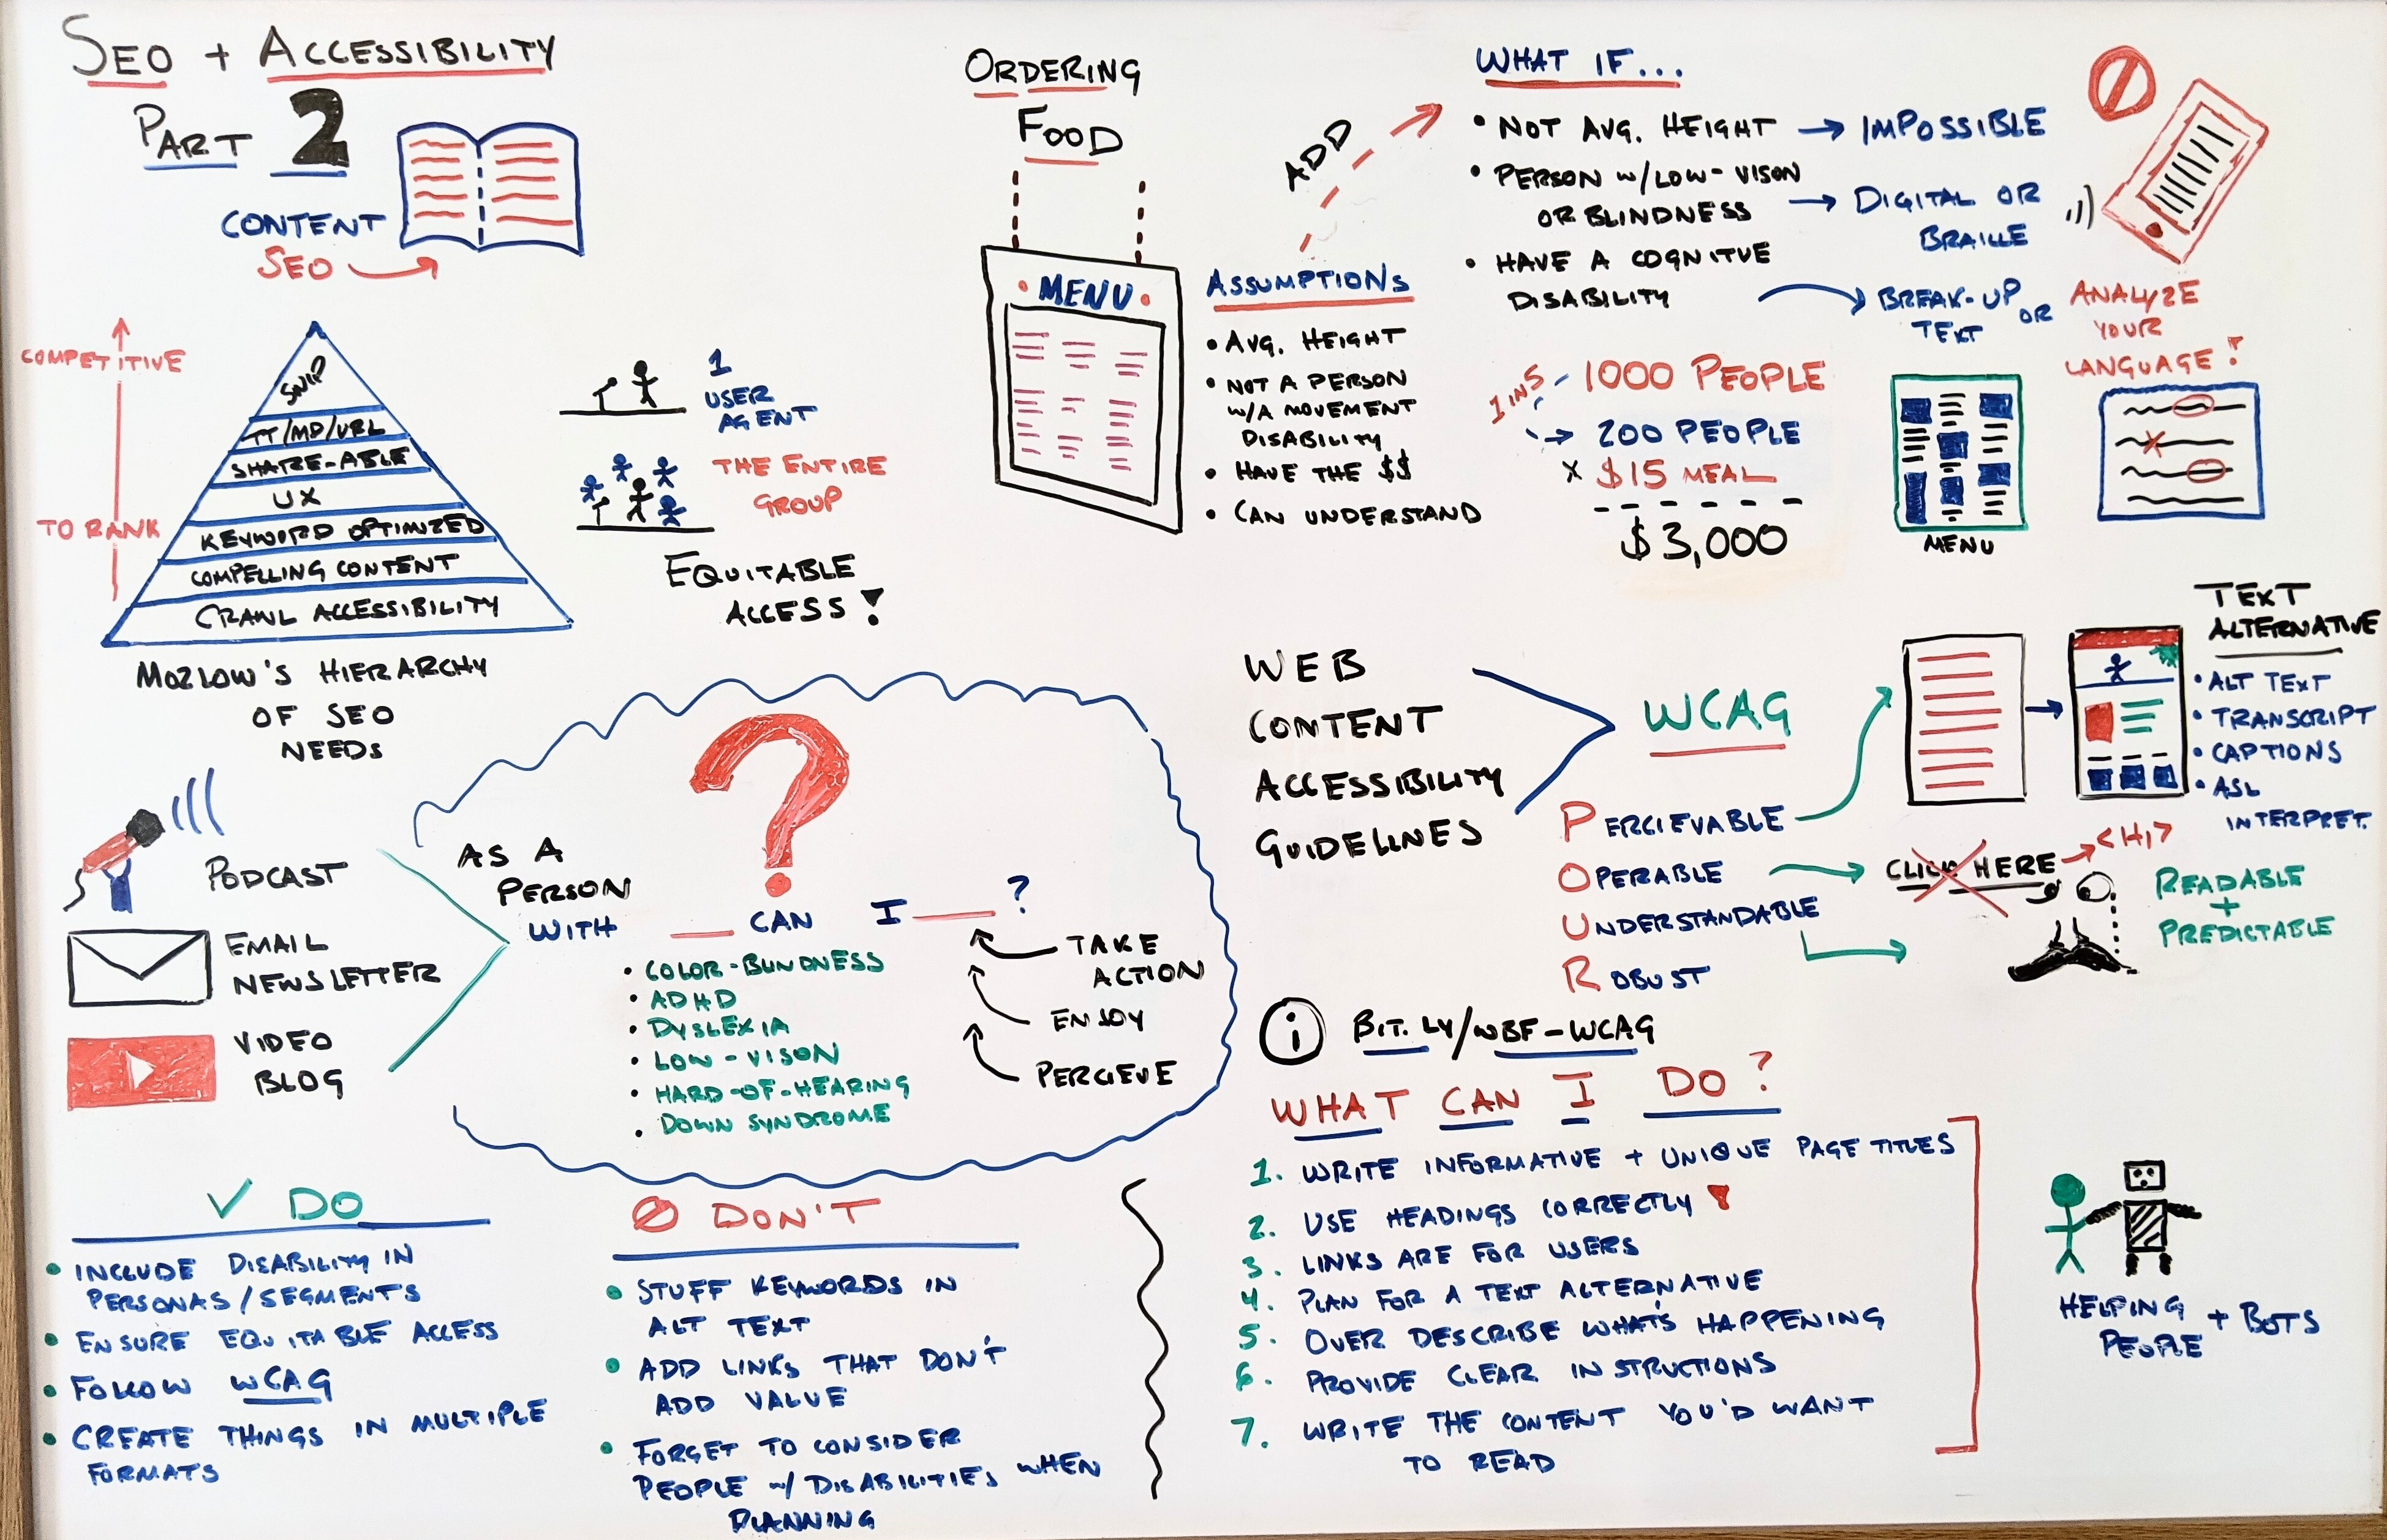 Photo of the whiteboard with handwritten notes on how content SEOs can focus on accessibility.